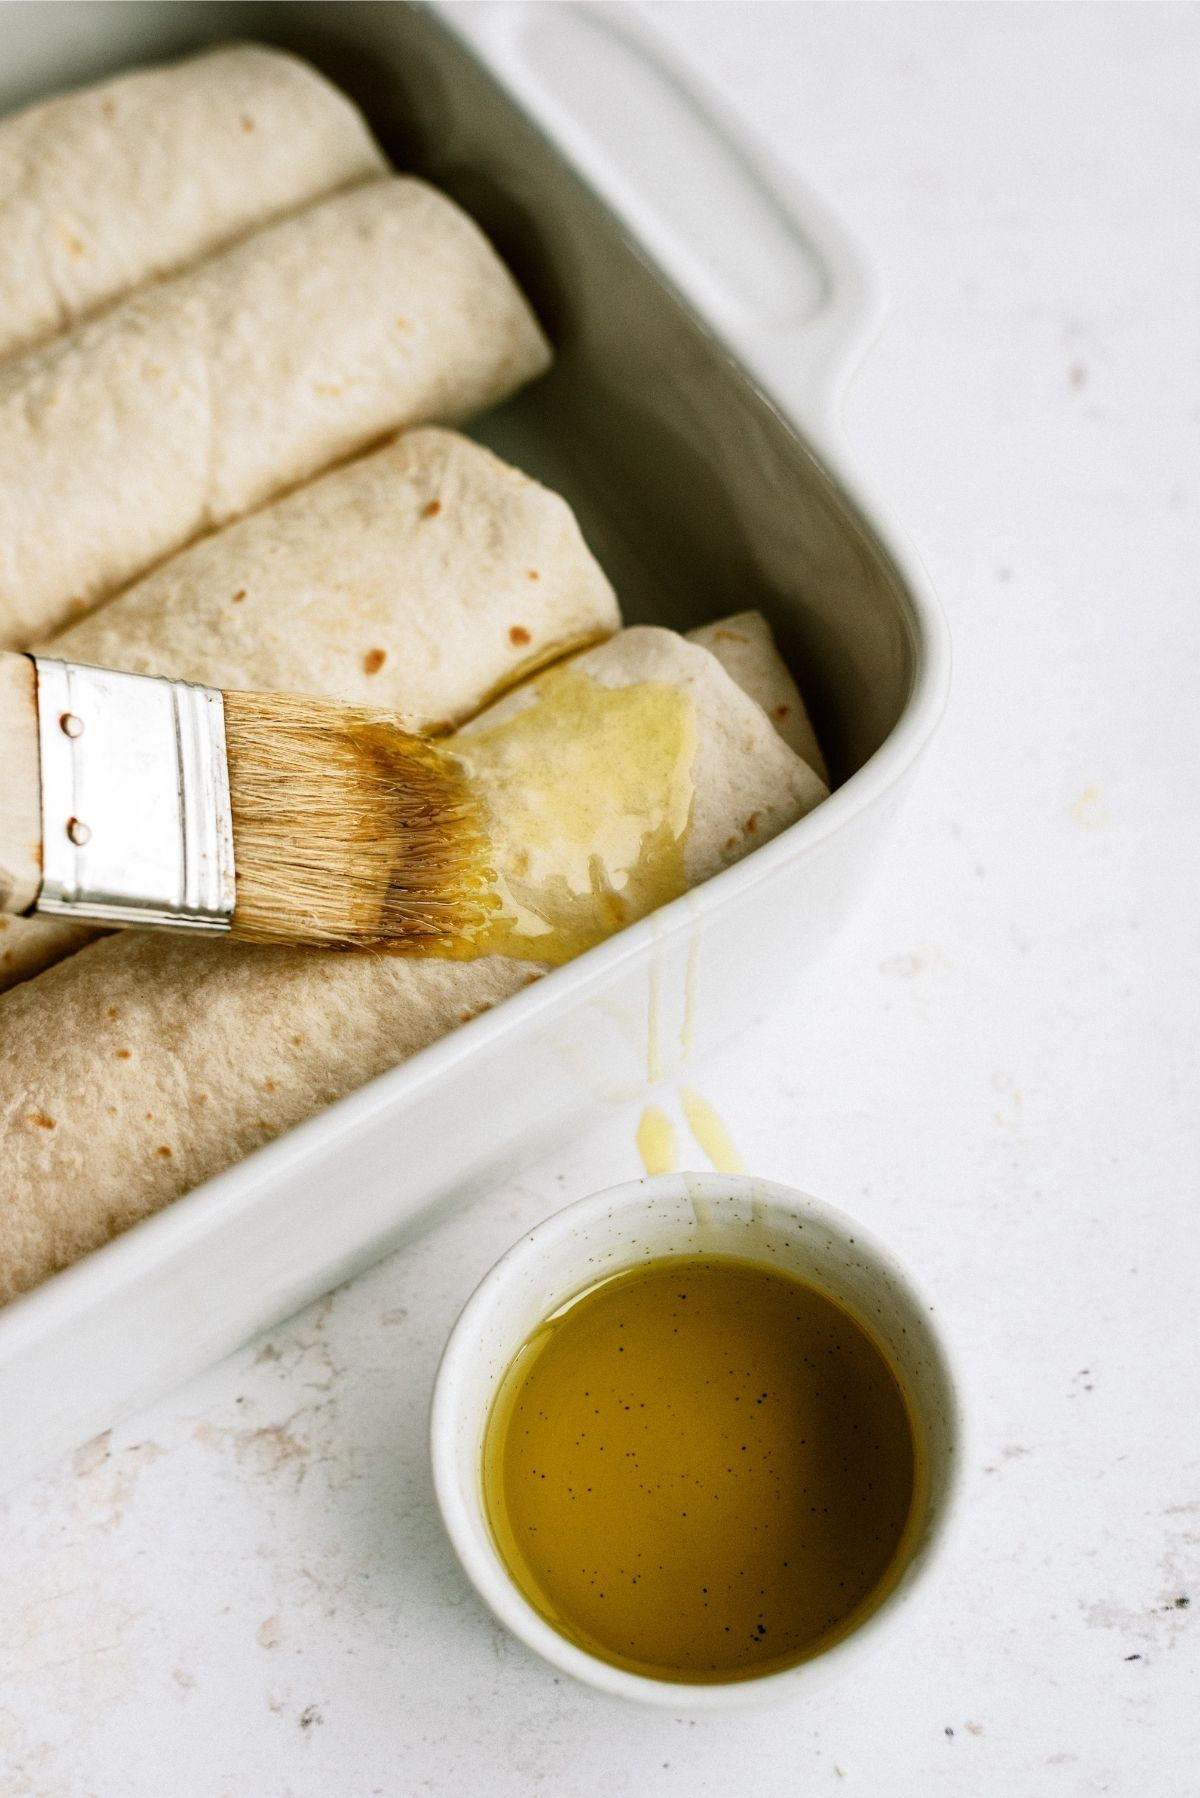 Unbaked Chimichangas with brushed on olive oil